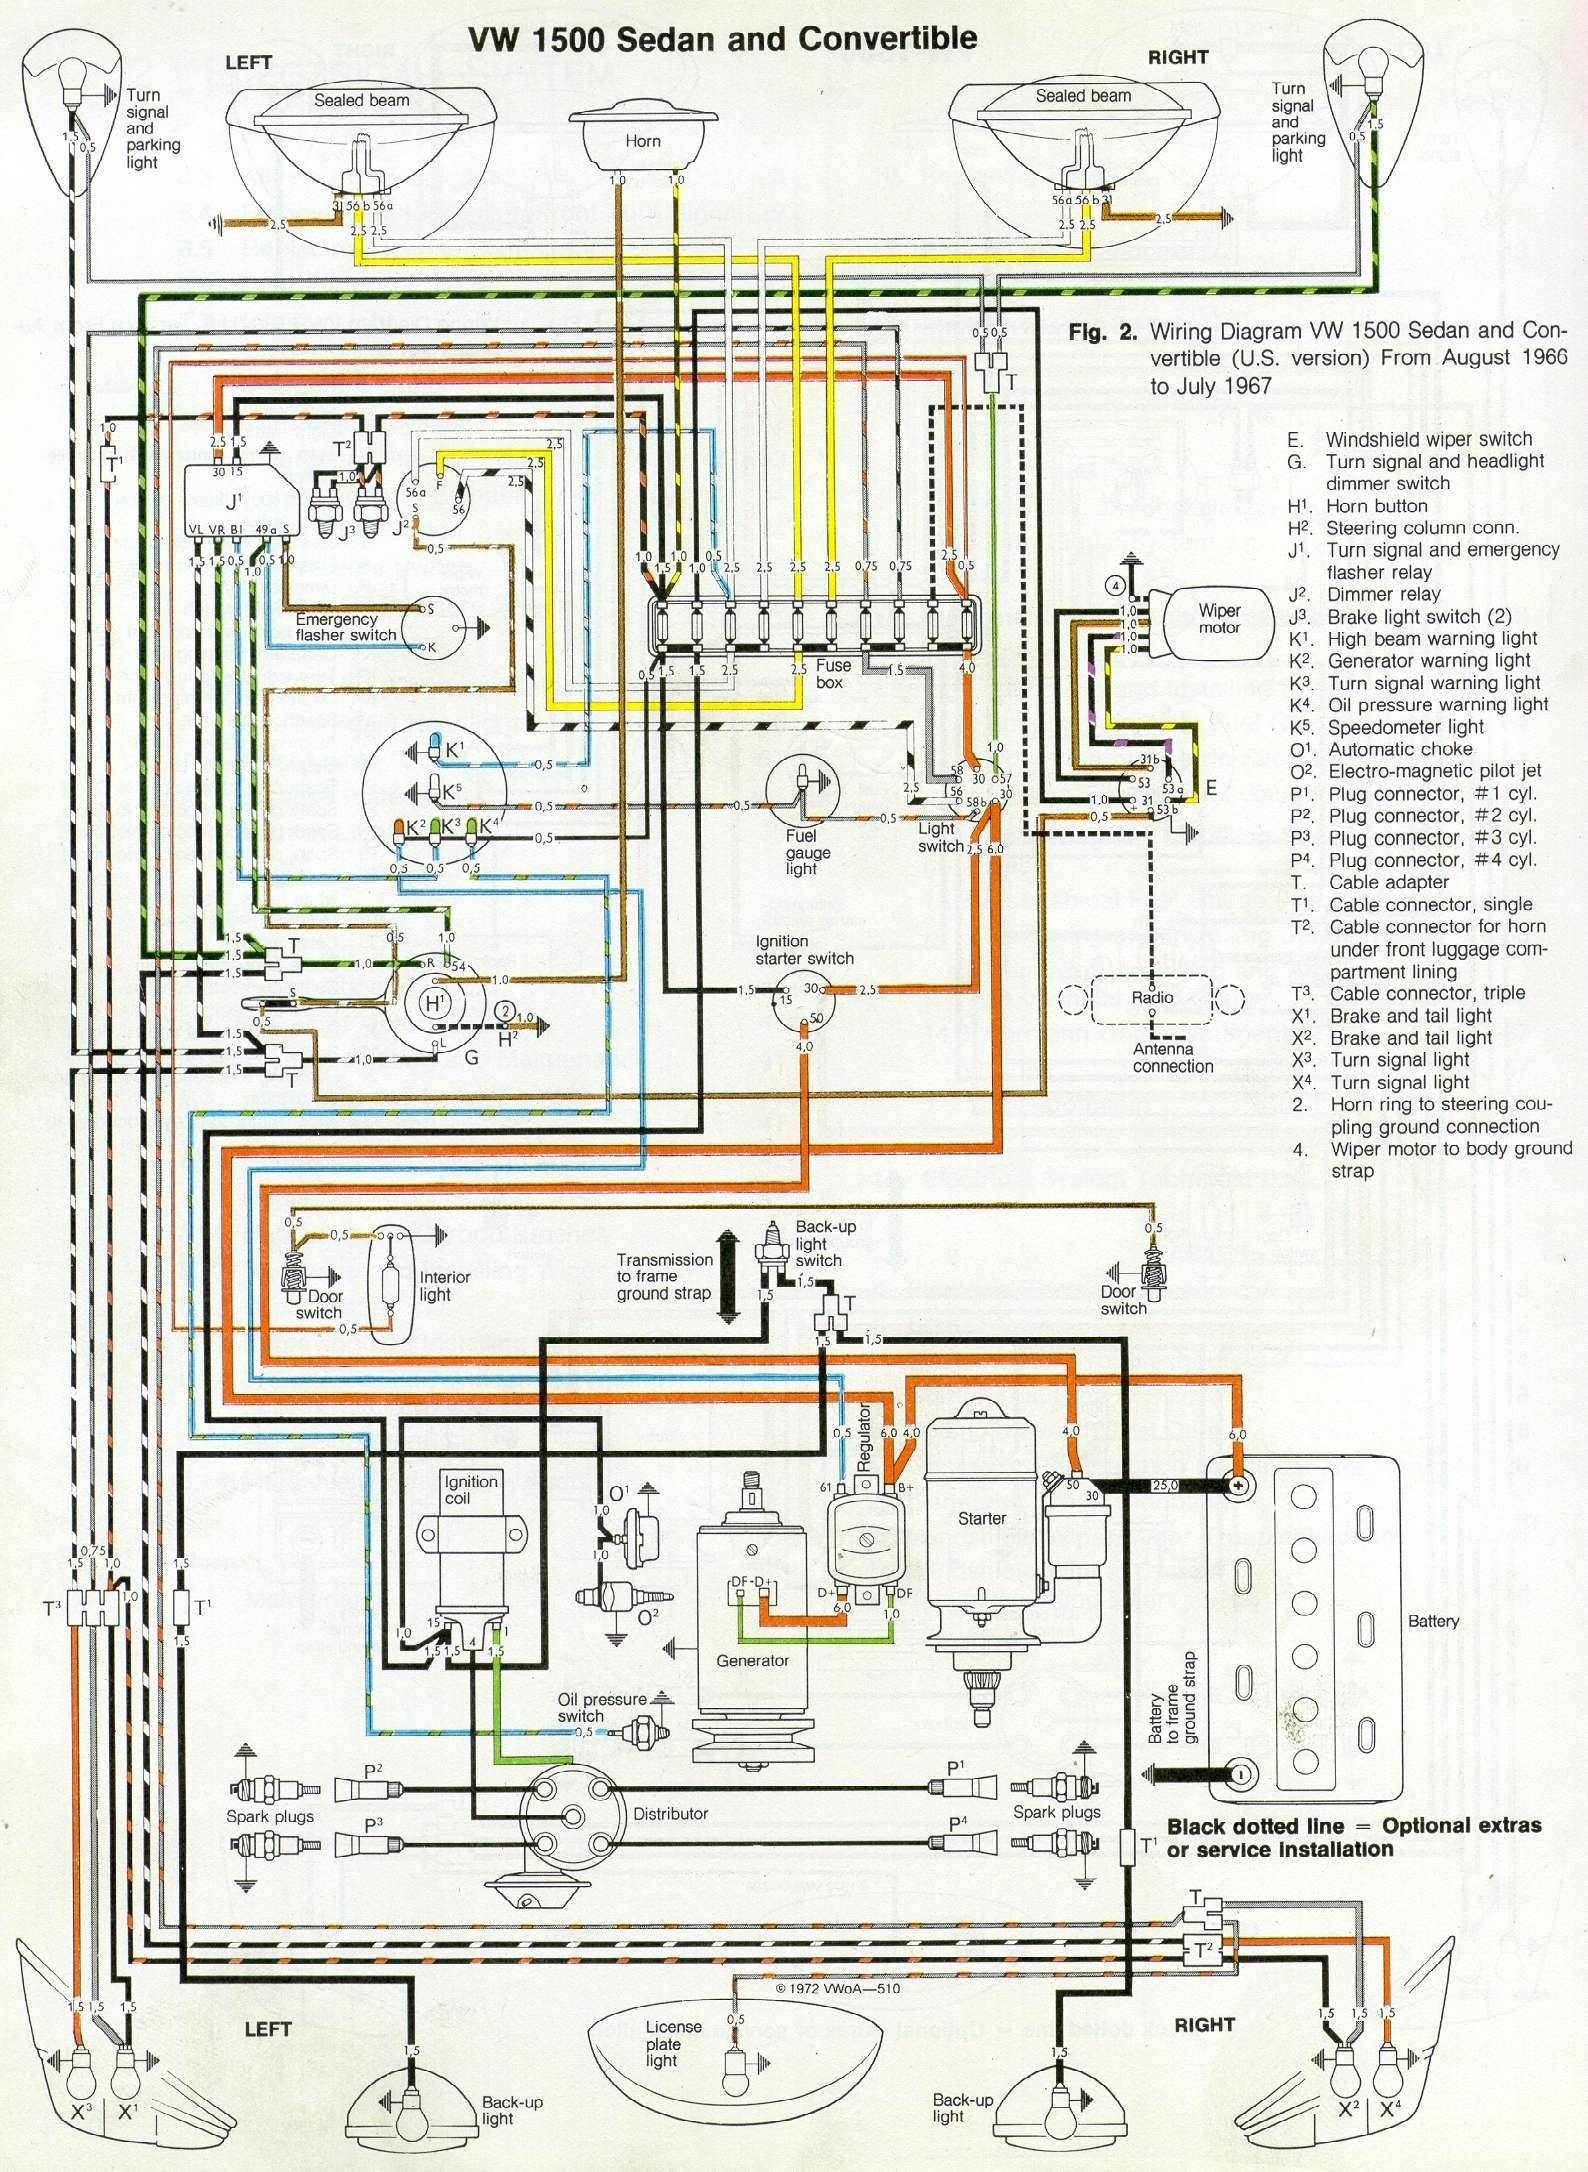 1967 vw bug ignition coil wiring diagram download wiring diagram1967 vw bug ignition coil wiring diagram